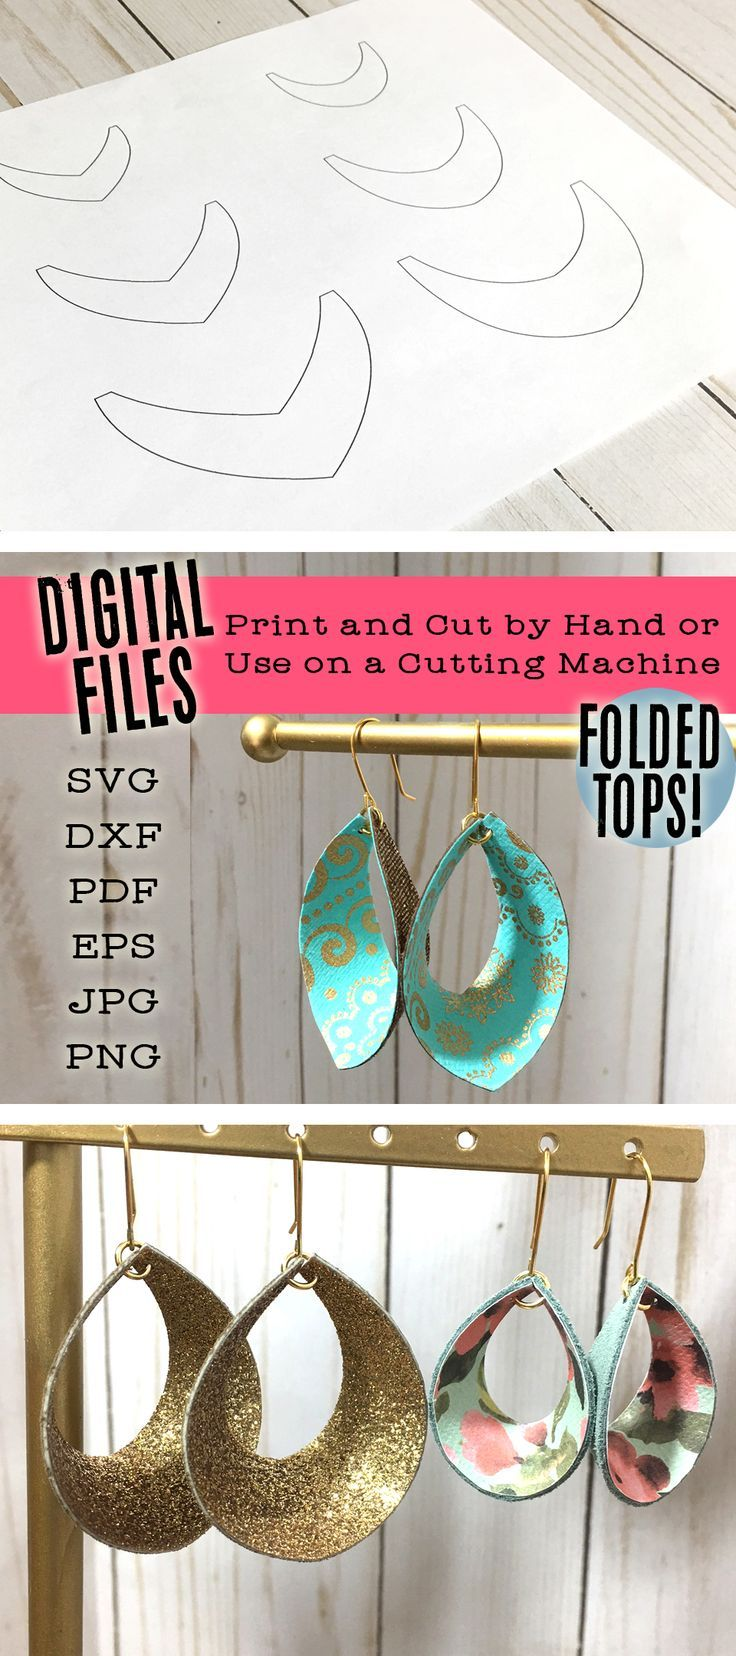 Leather Earring SVG Files - Dimensional Leaf and Teardrop Shapes - Cutout on Cricut or Print and Cut by Hand - Digital Download